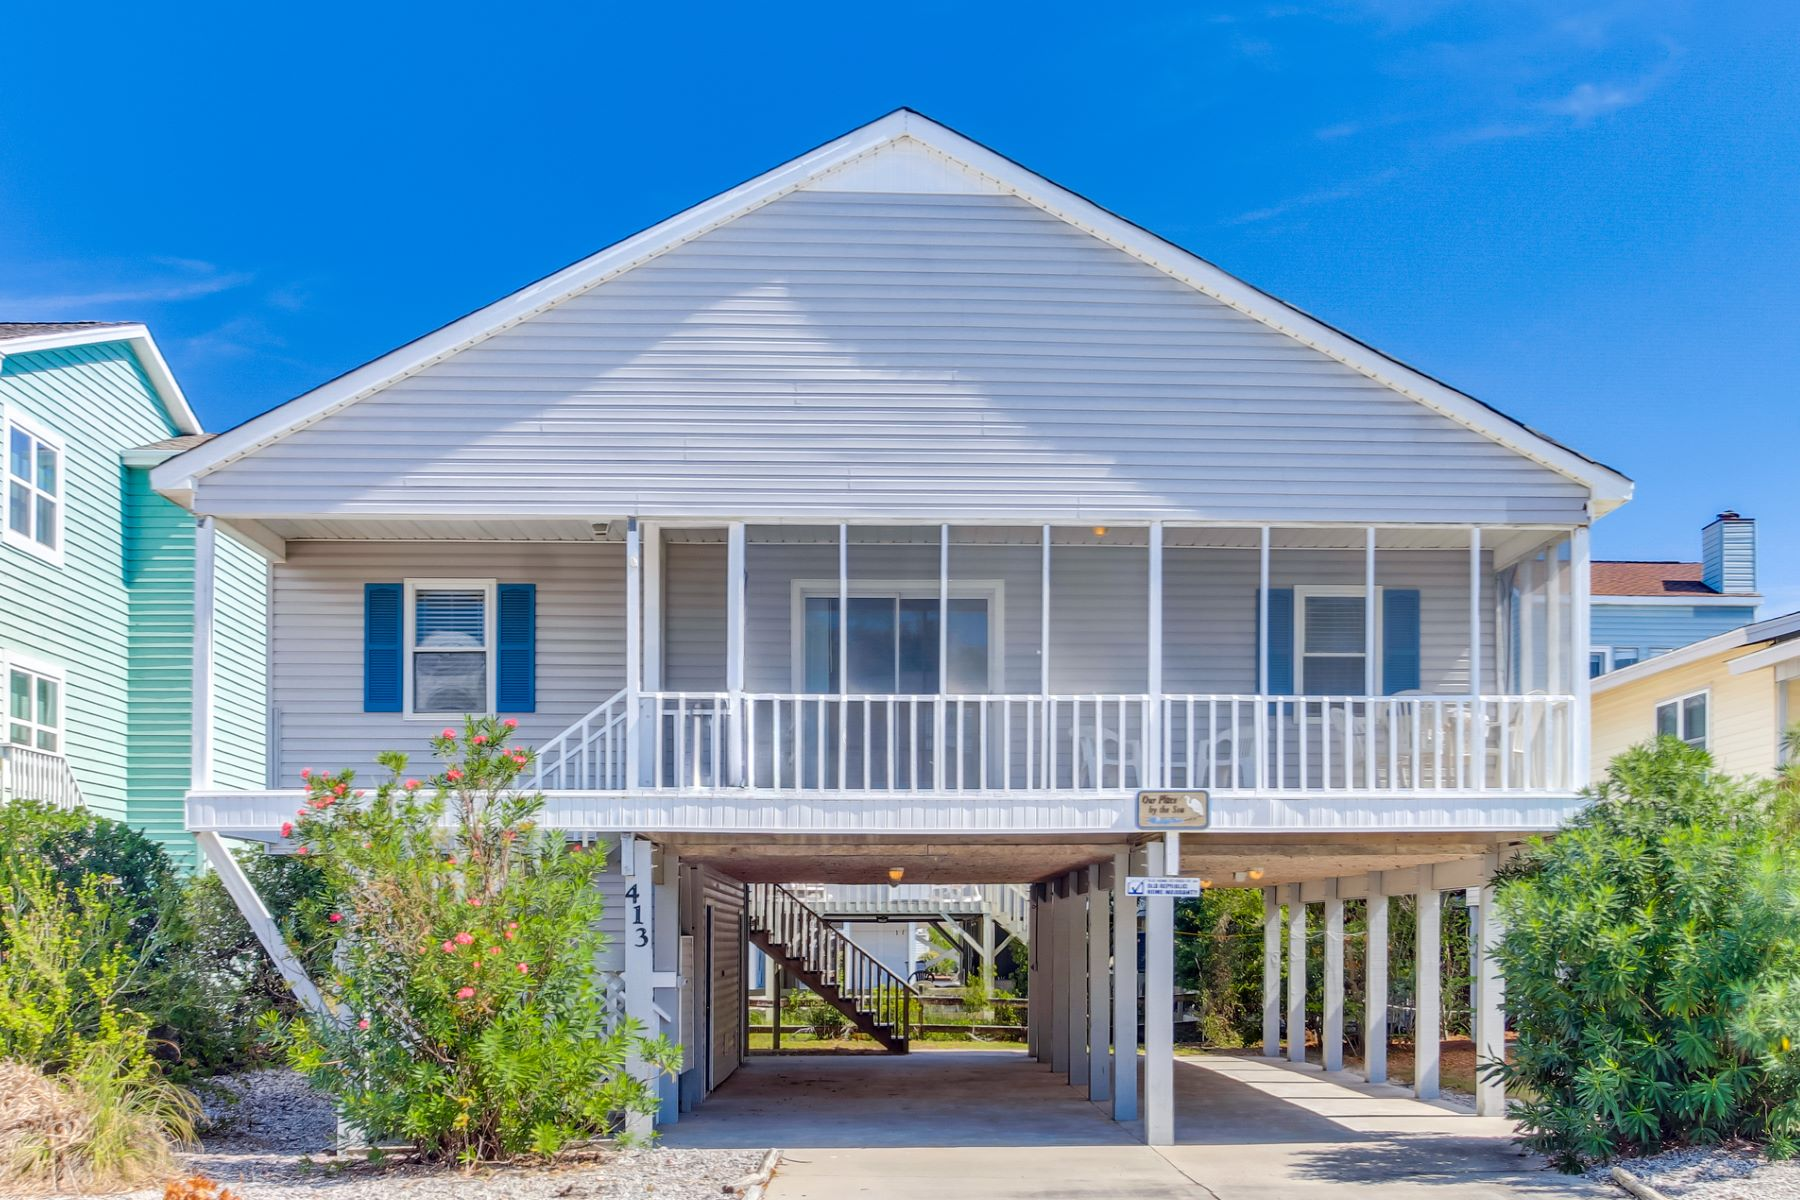 Single Family Home for Active at Beach Cottage, Casual Coastal Living 413 E 1st Street Sunset Beach, North Carolina 28468 United States